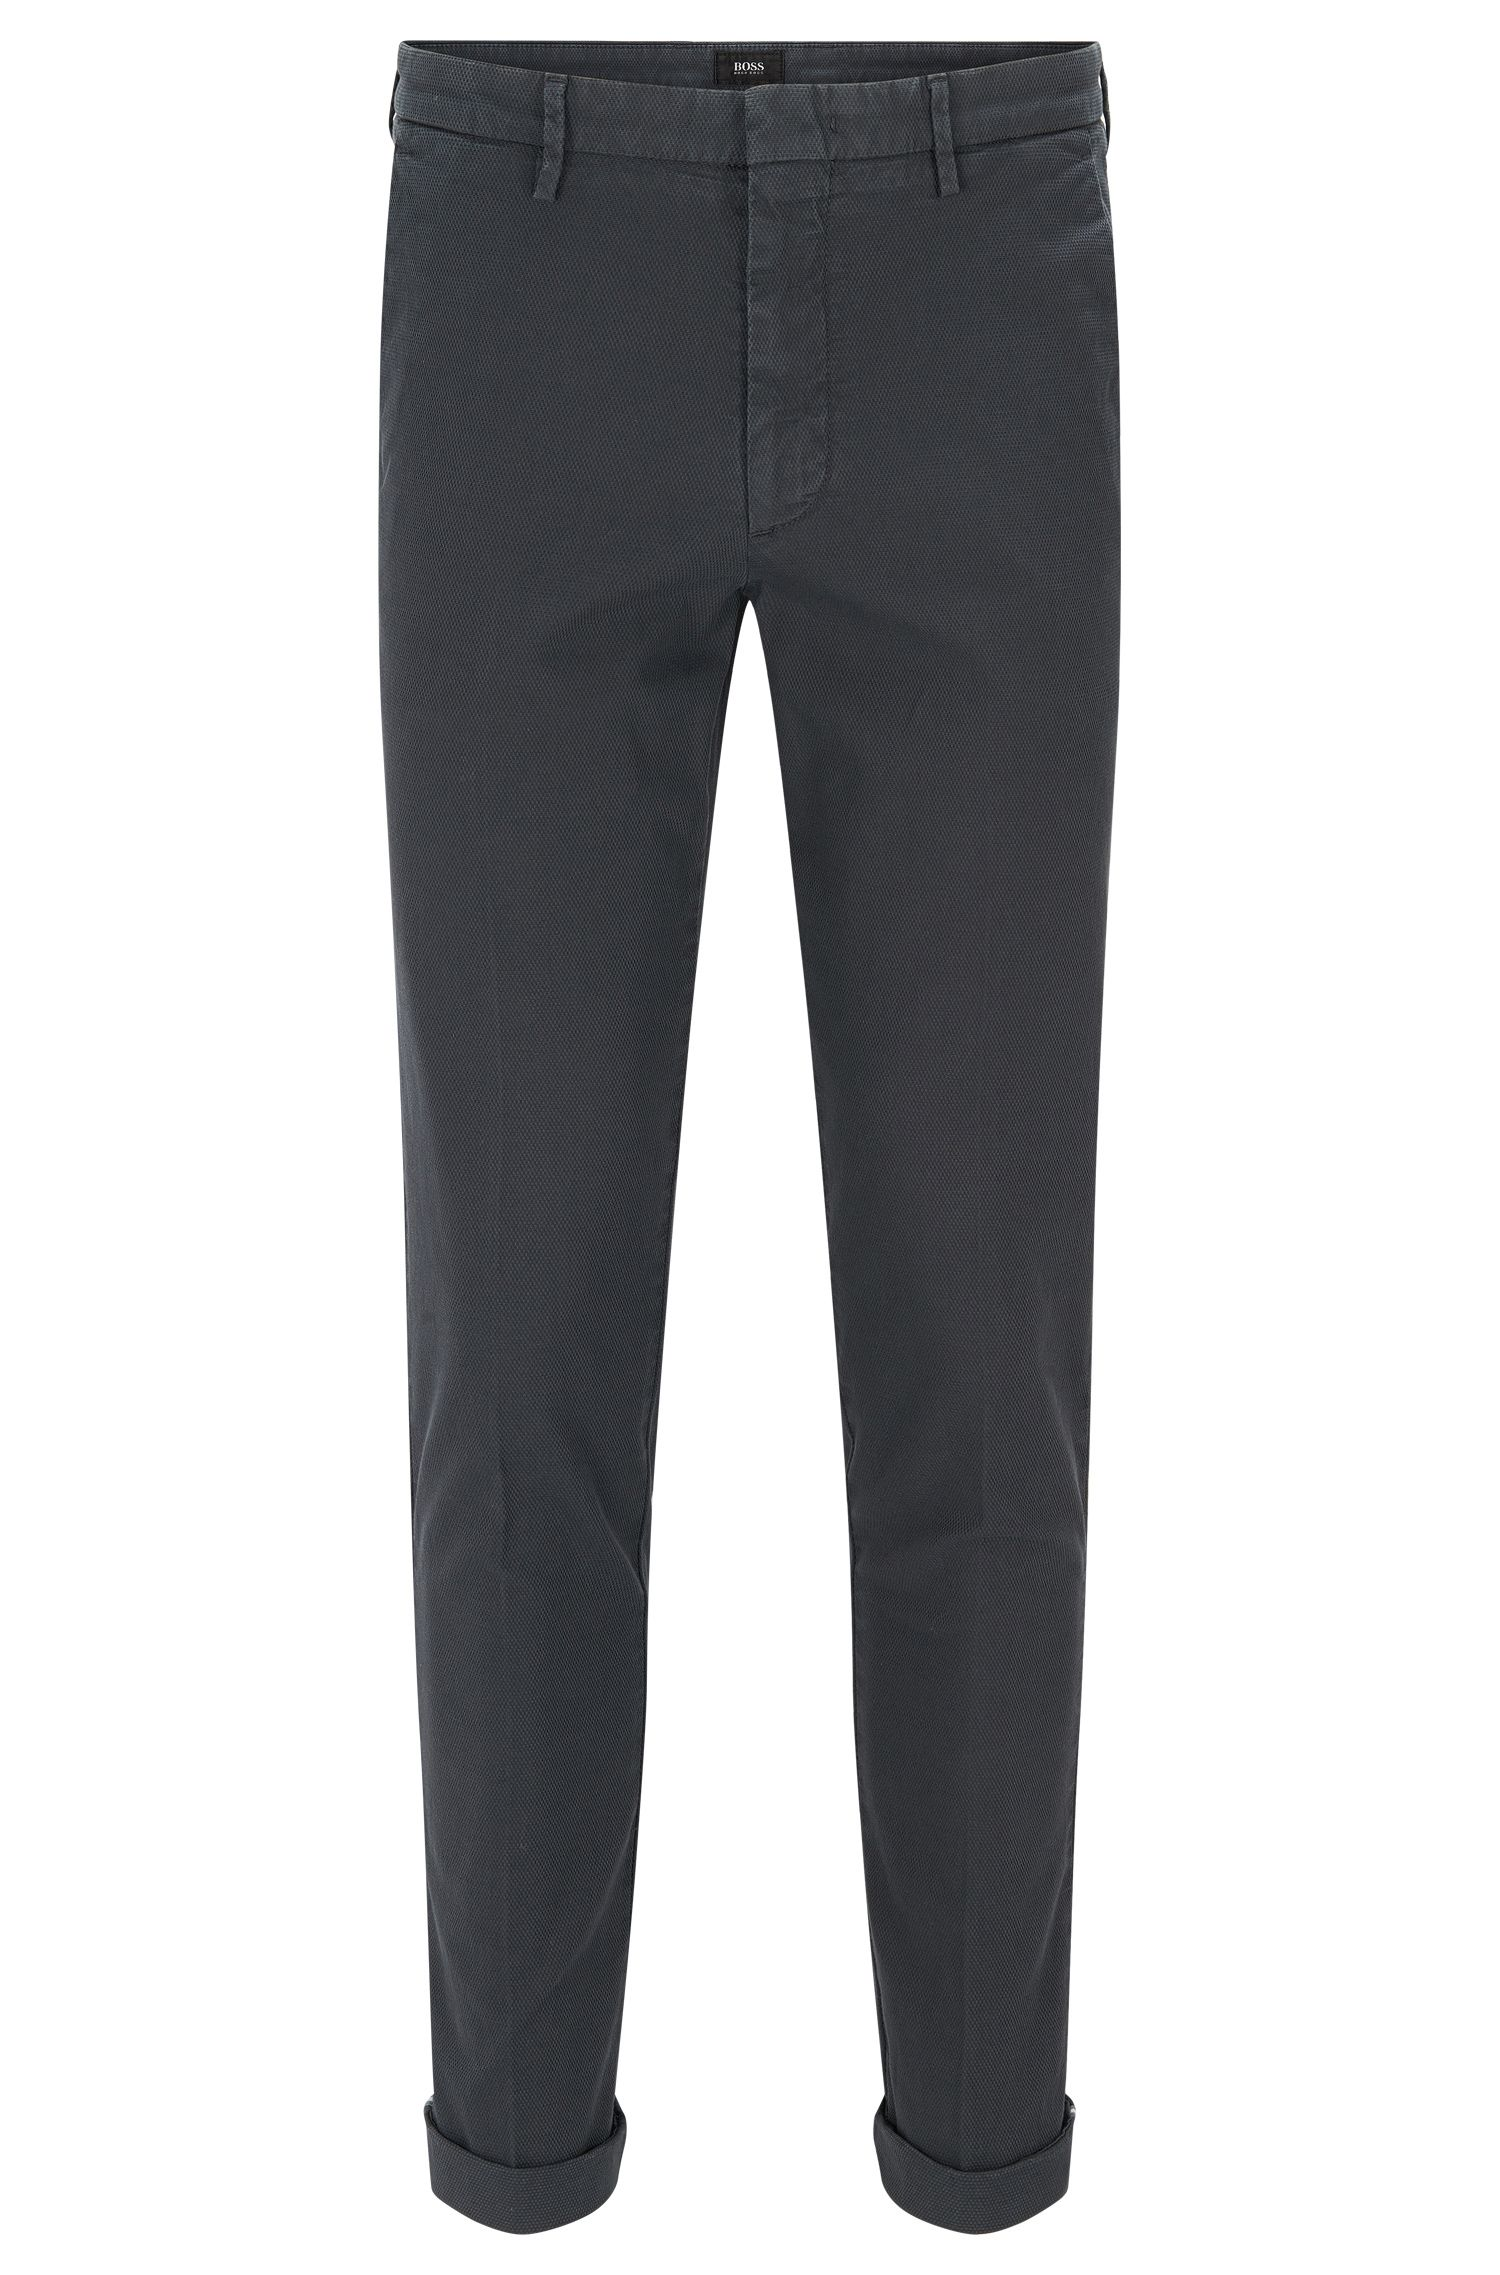 Chino Slim Fit en tissu italien structuré